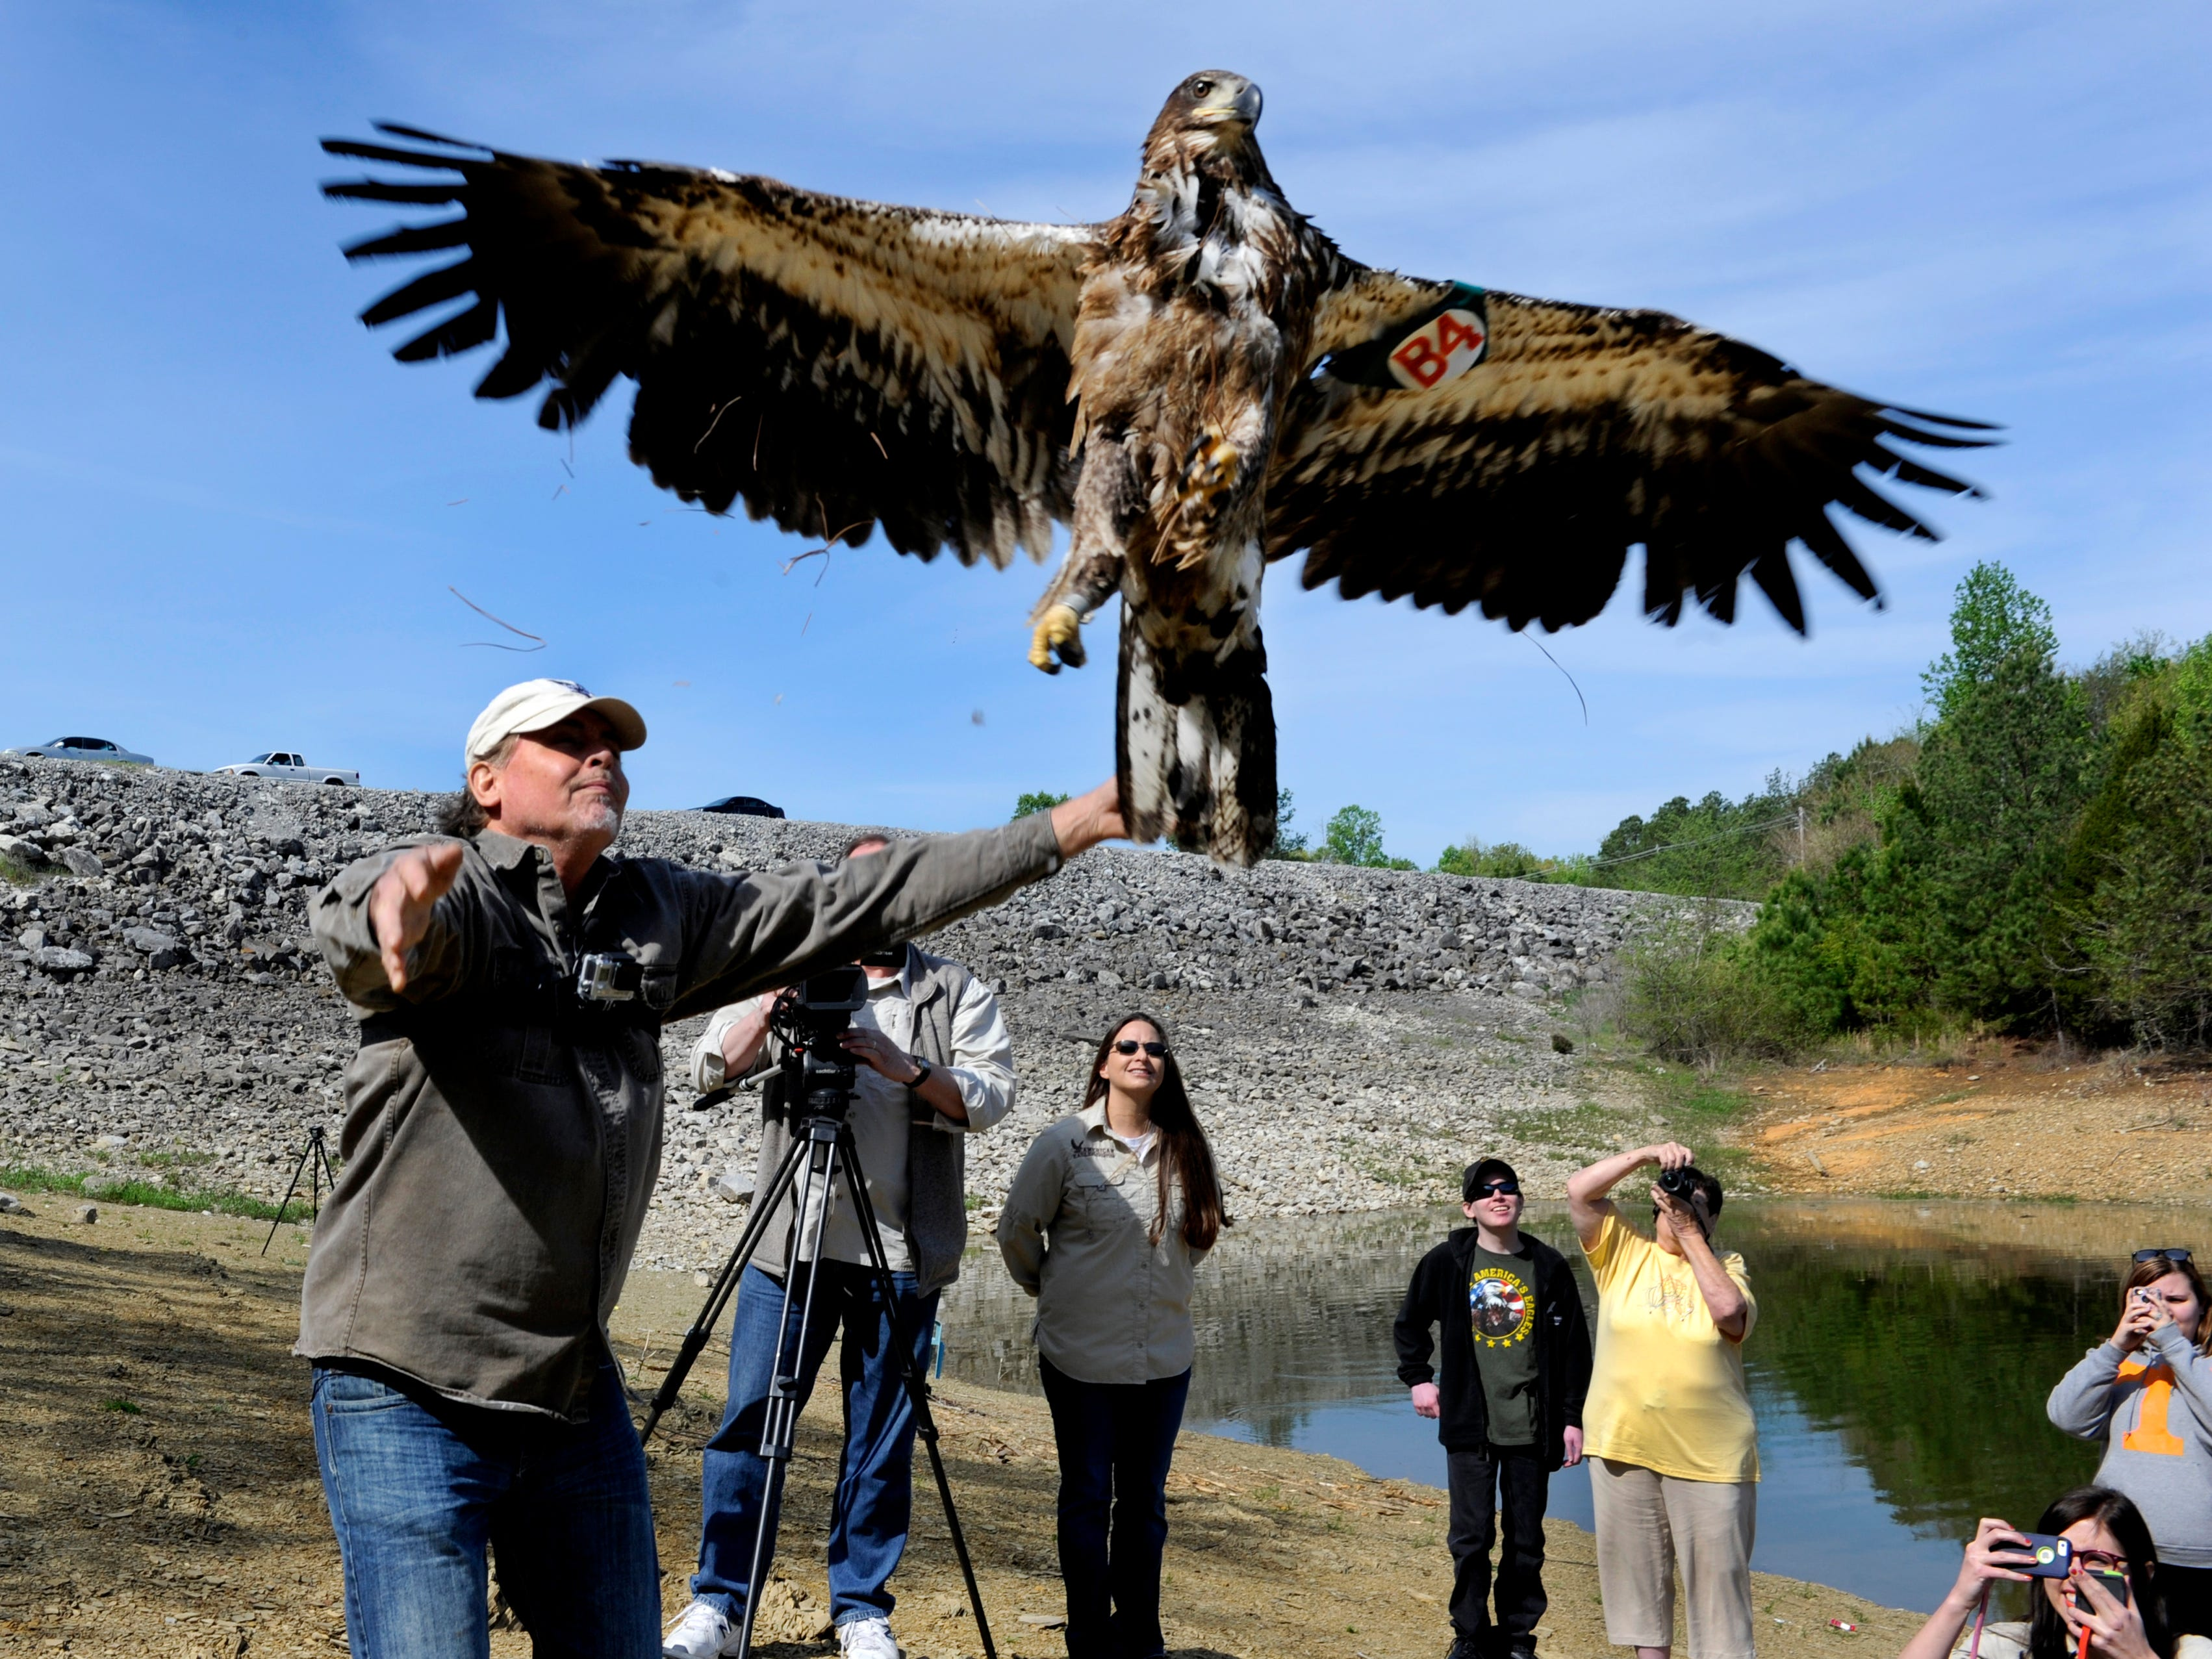 Al Louis Cecere with the American Eagle Foundation releases a bald eagle named Winfield along Douglas Lake Thursday, Apr. 24, 2014. The one-year-old male eagle is named after the Winfield Dunn Parkway where it was blown from its nest last spring.